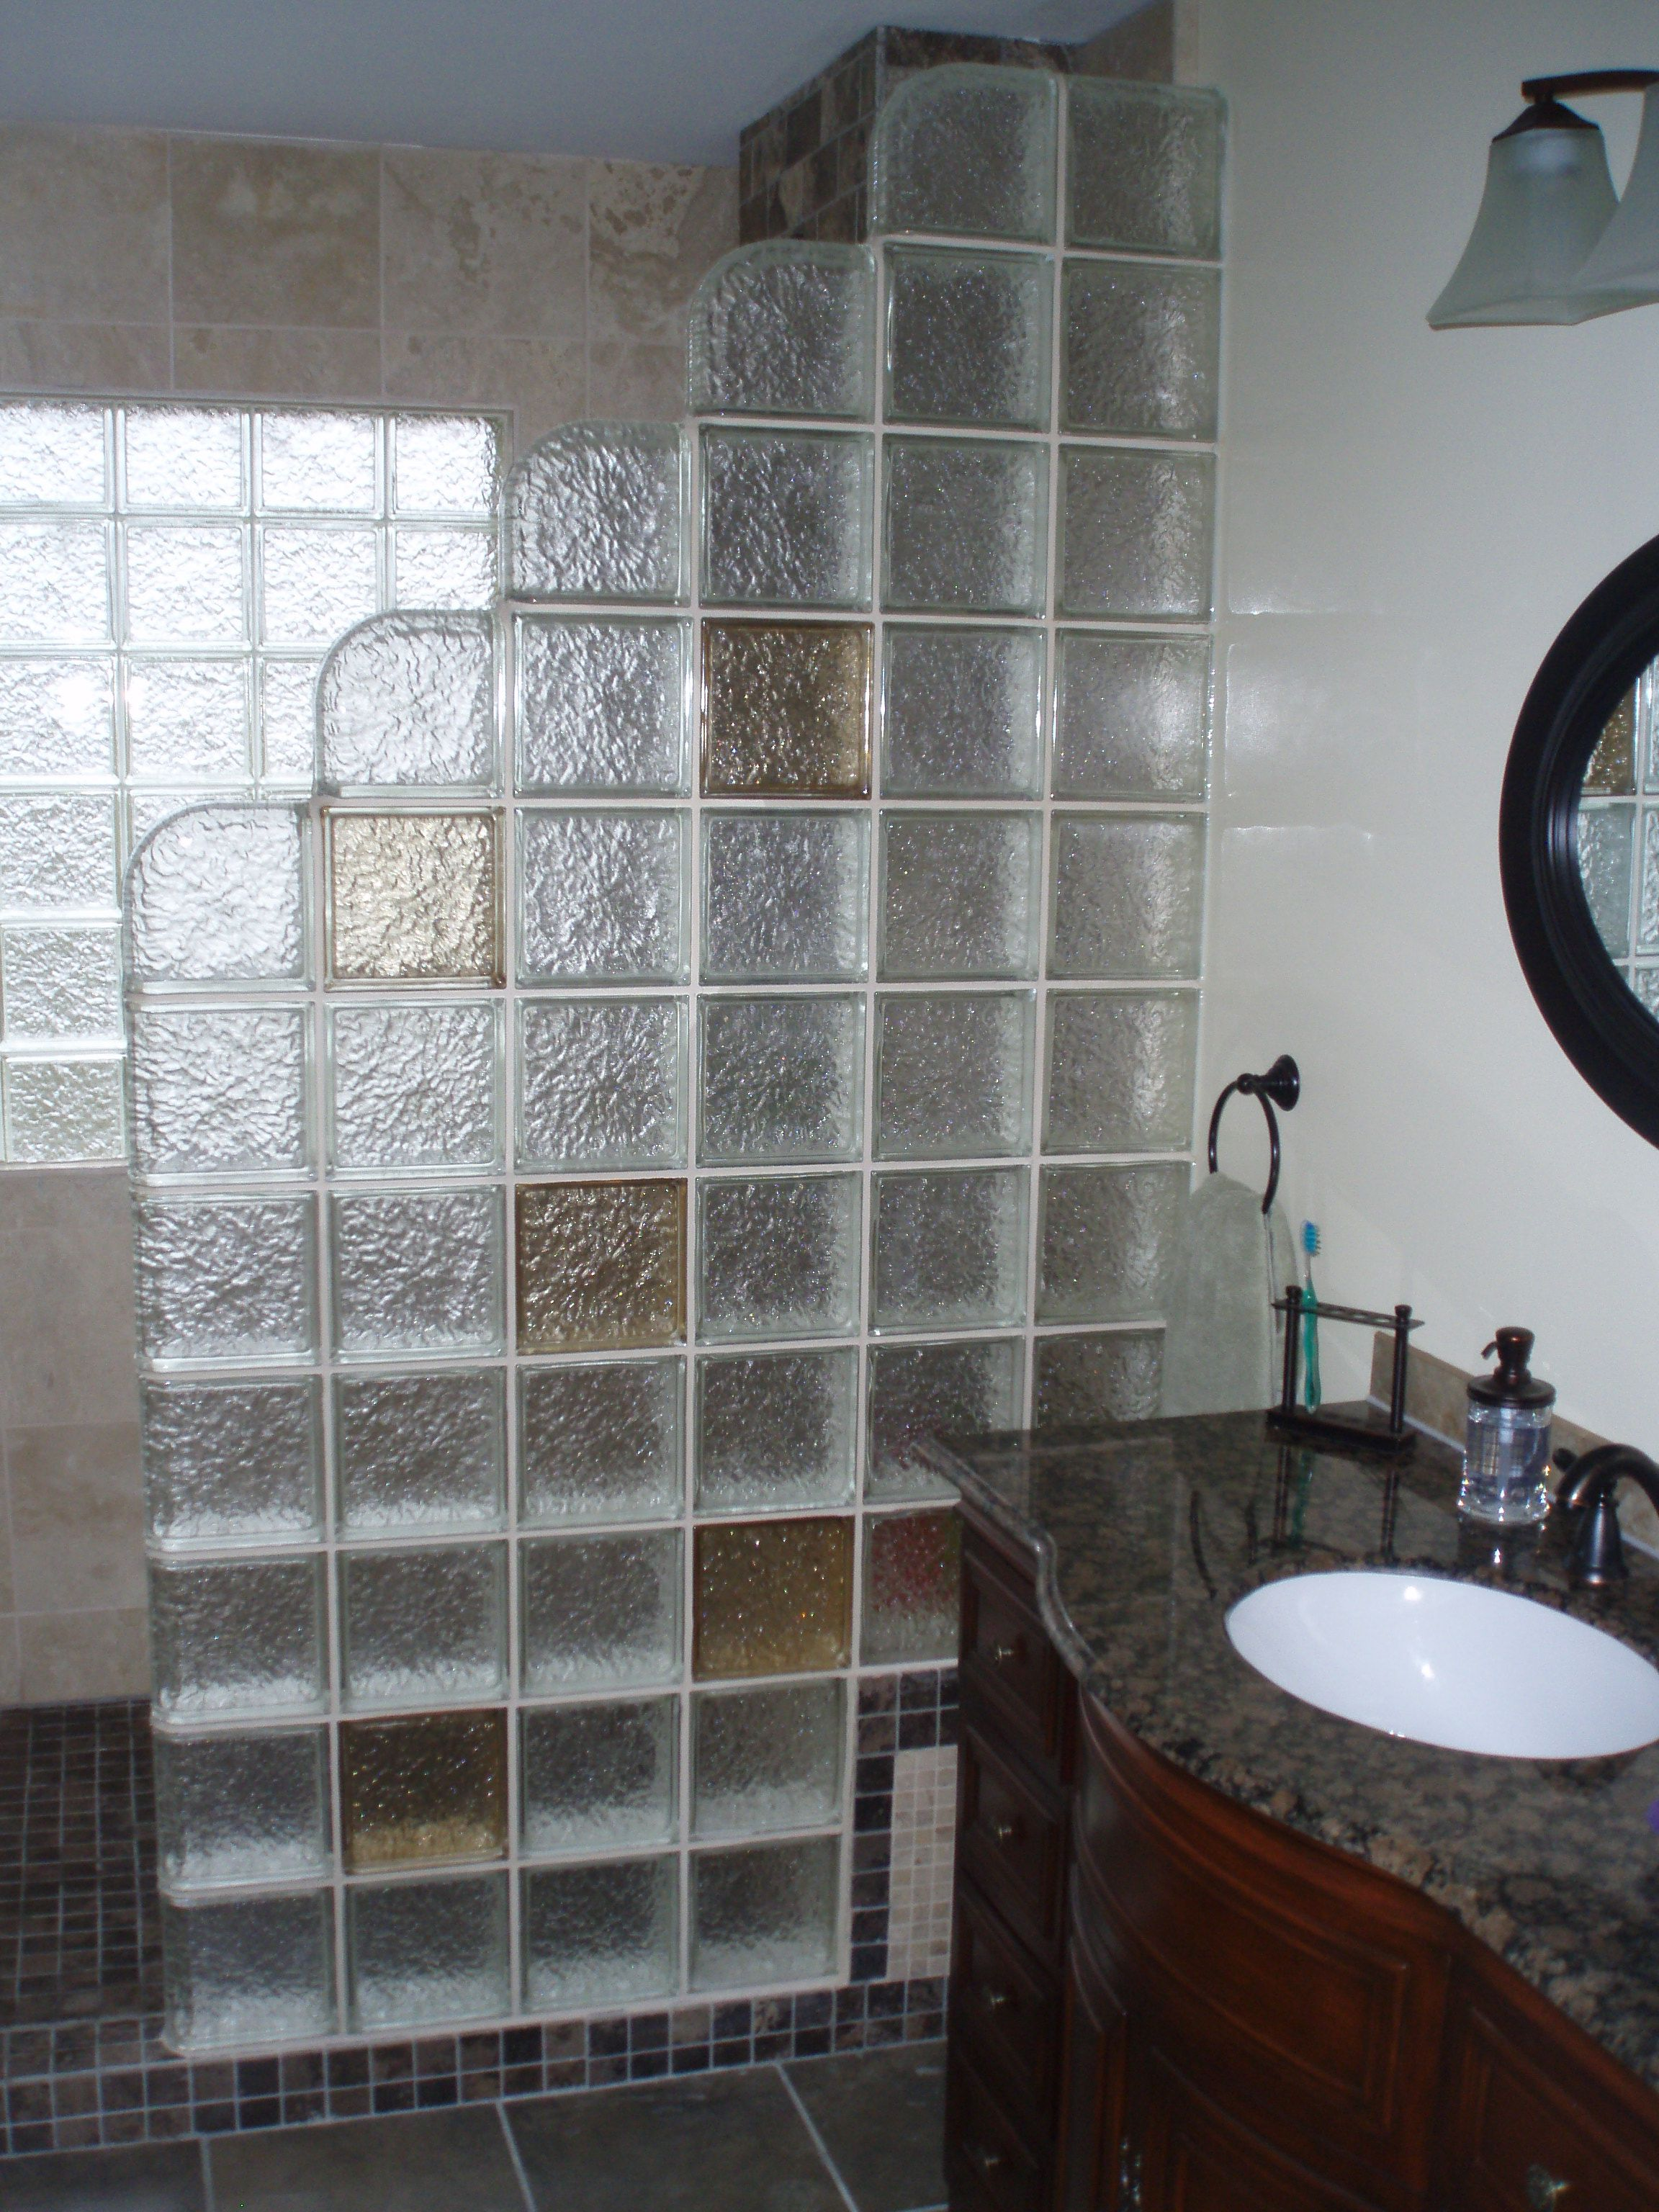 A Step Down Colored Glass Block Wall Can Add Style And Streaming Light Through A Bathroom And